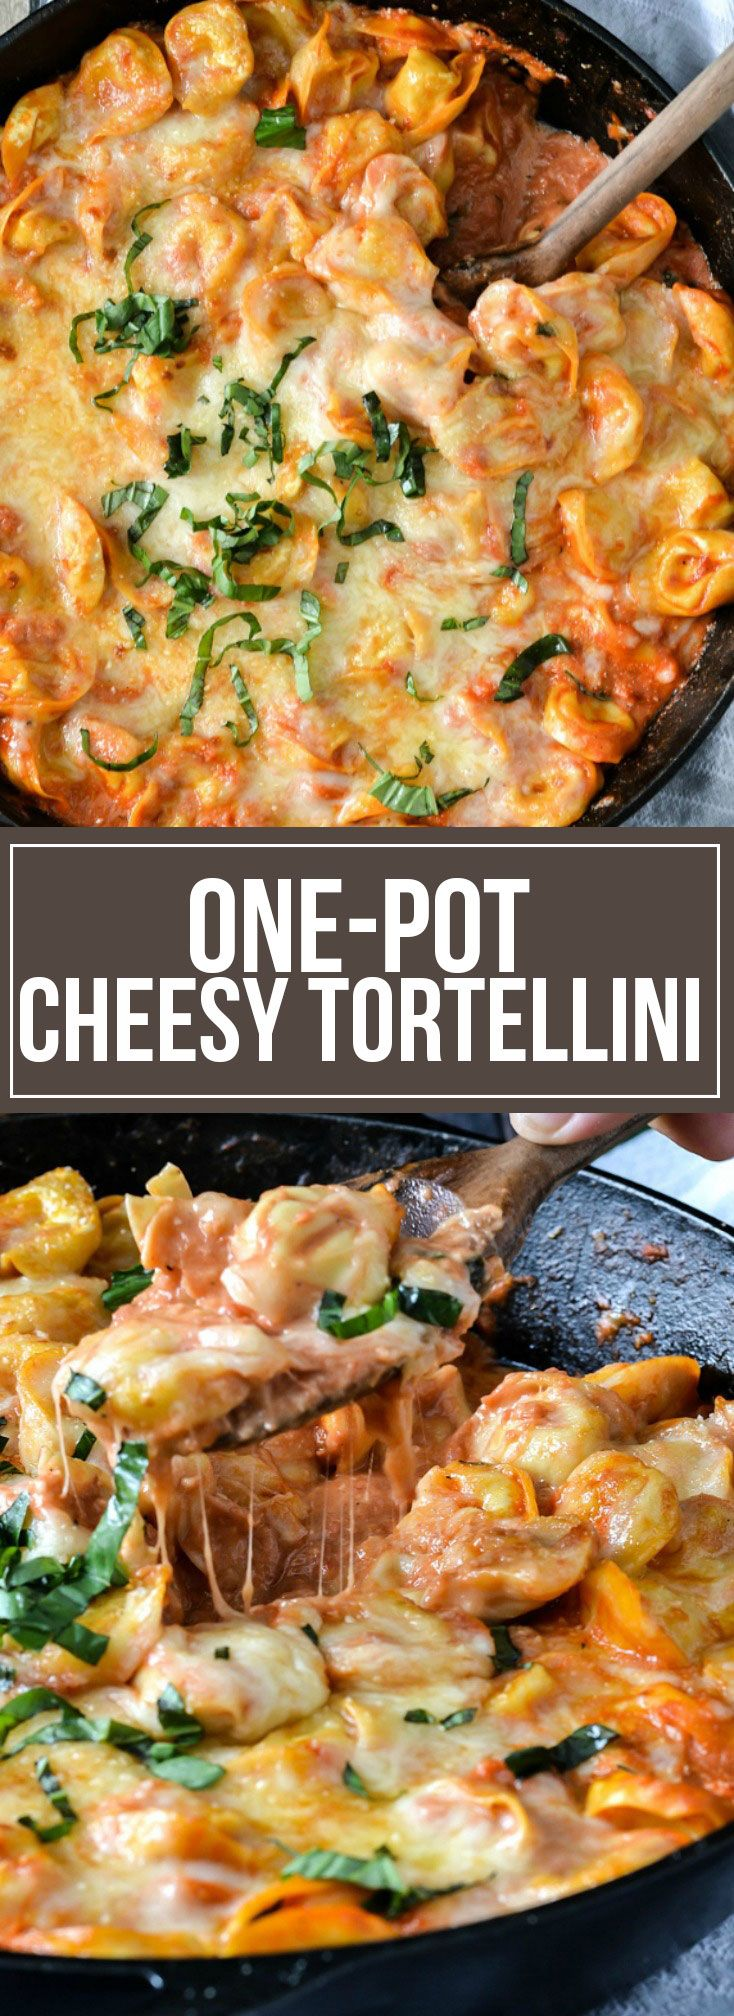 This easy One-Pot Cheesy Tortellini will become a family favorite! It's full of flavor made with a easy homemade sauce topped ready in about 30 minutes!